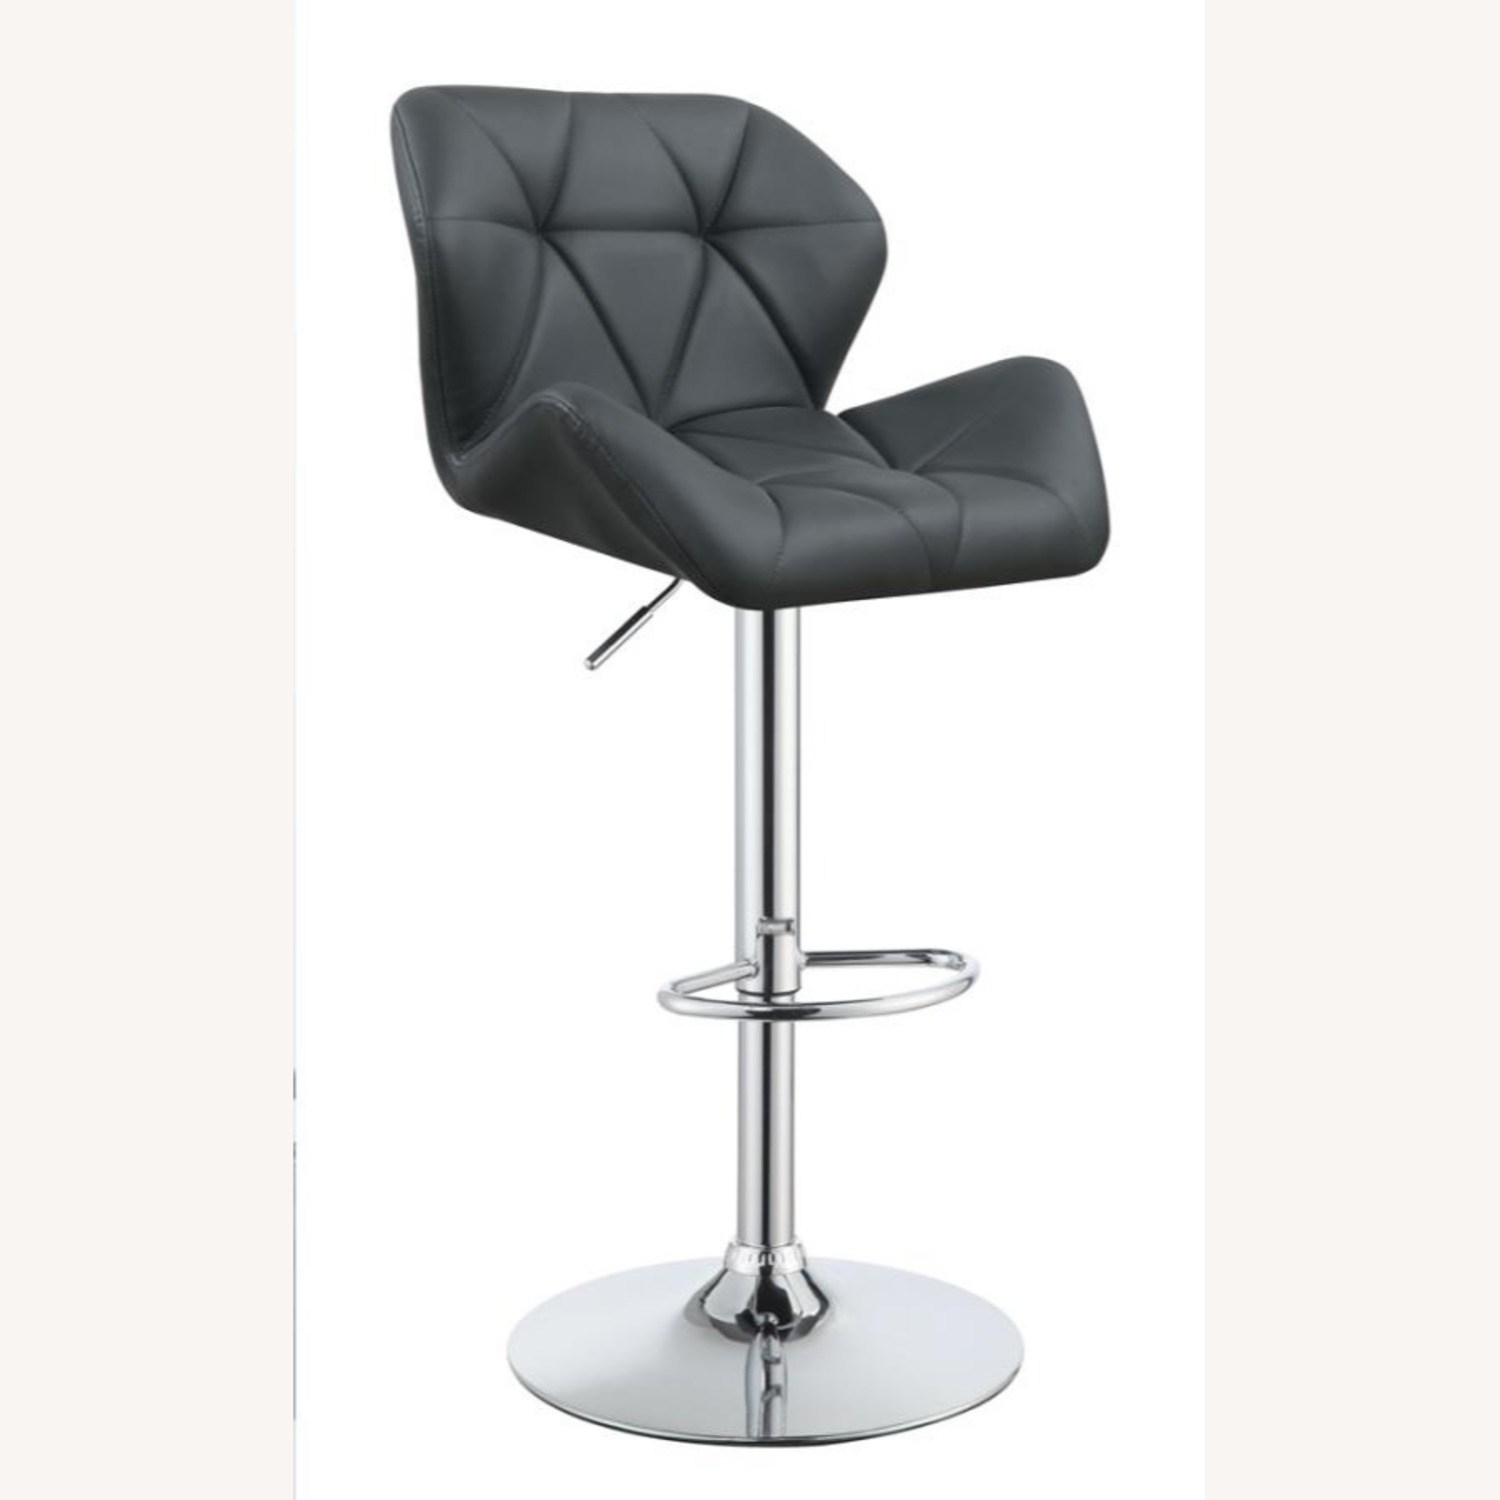 Adjustable In Grey Leather W/ Chrome Base - image-0